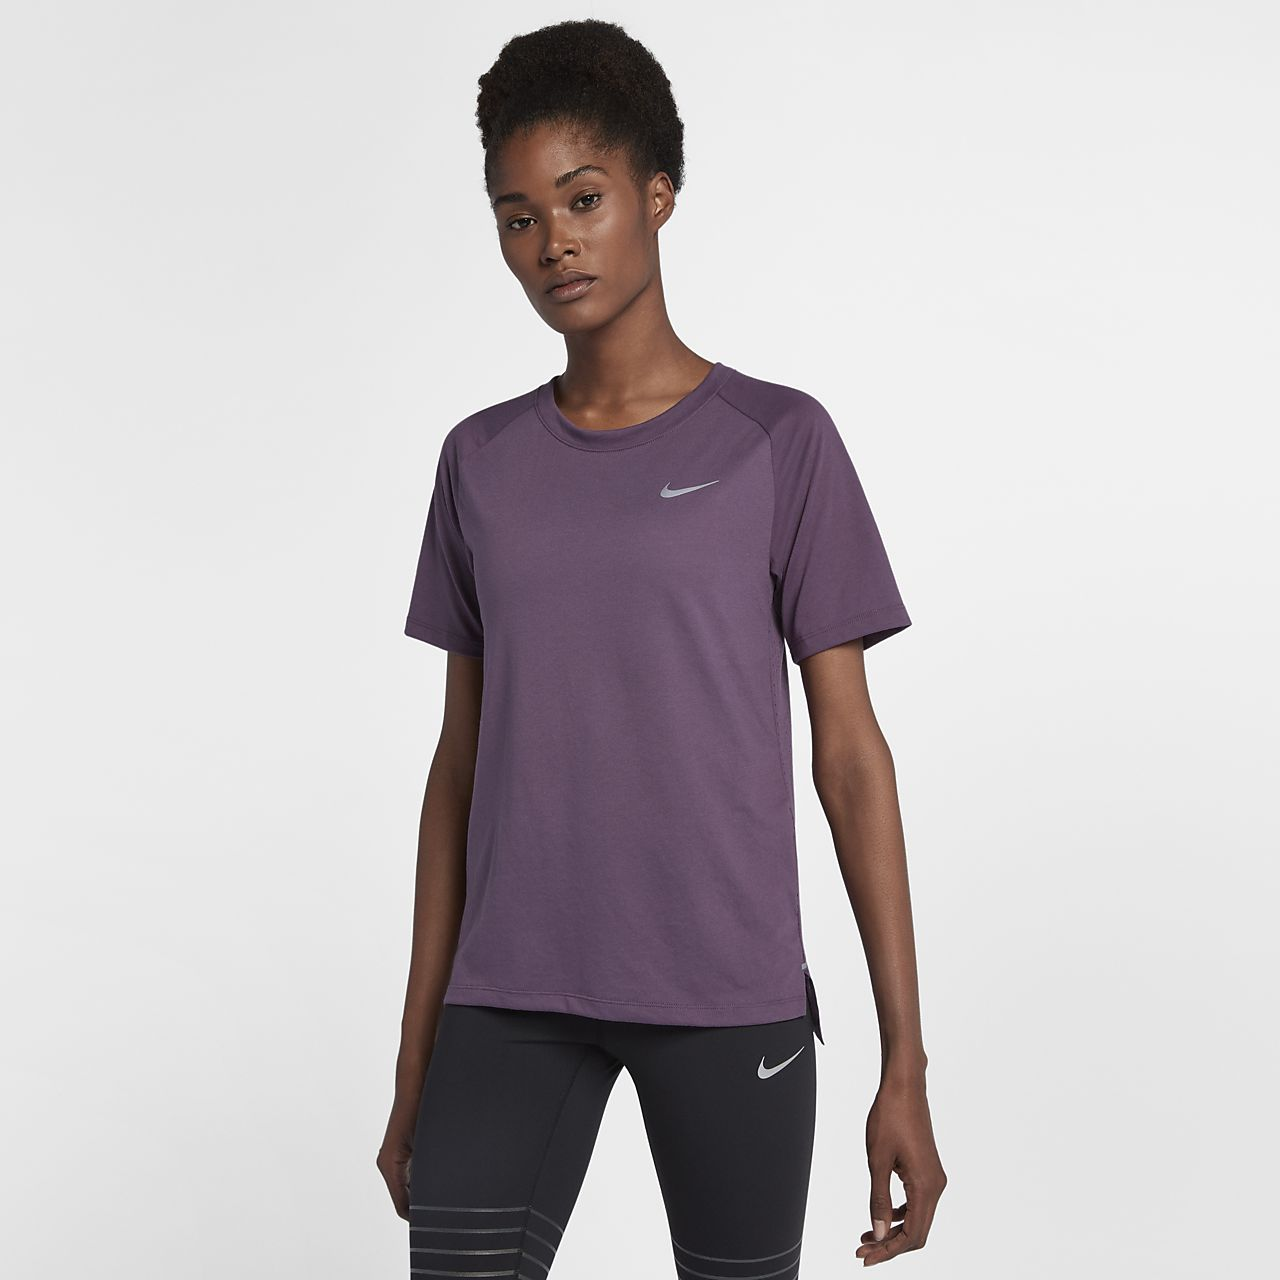 ... Nike Dri-FIT Tailwind Women's Short Sleeve Running Top